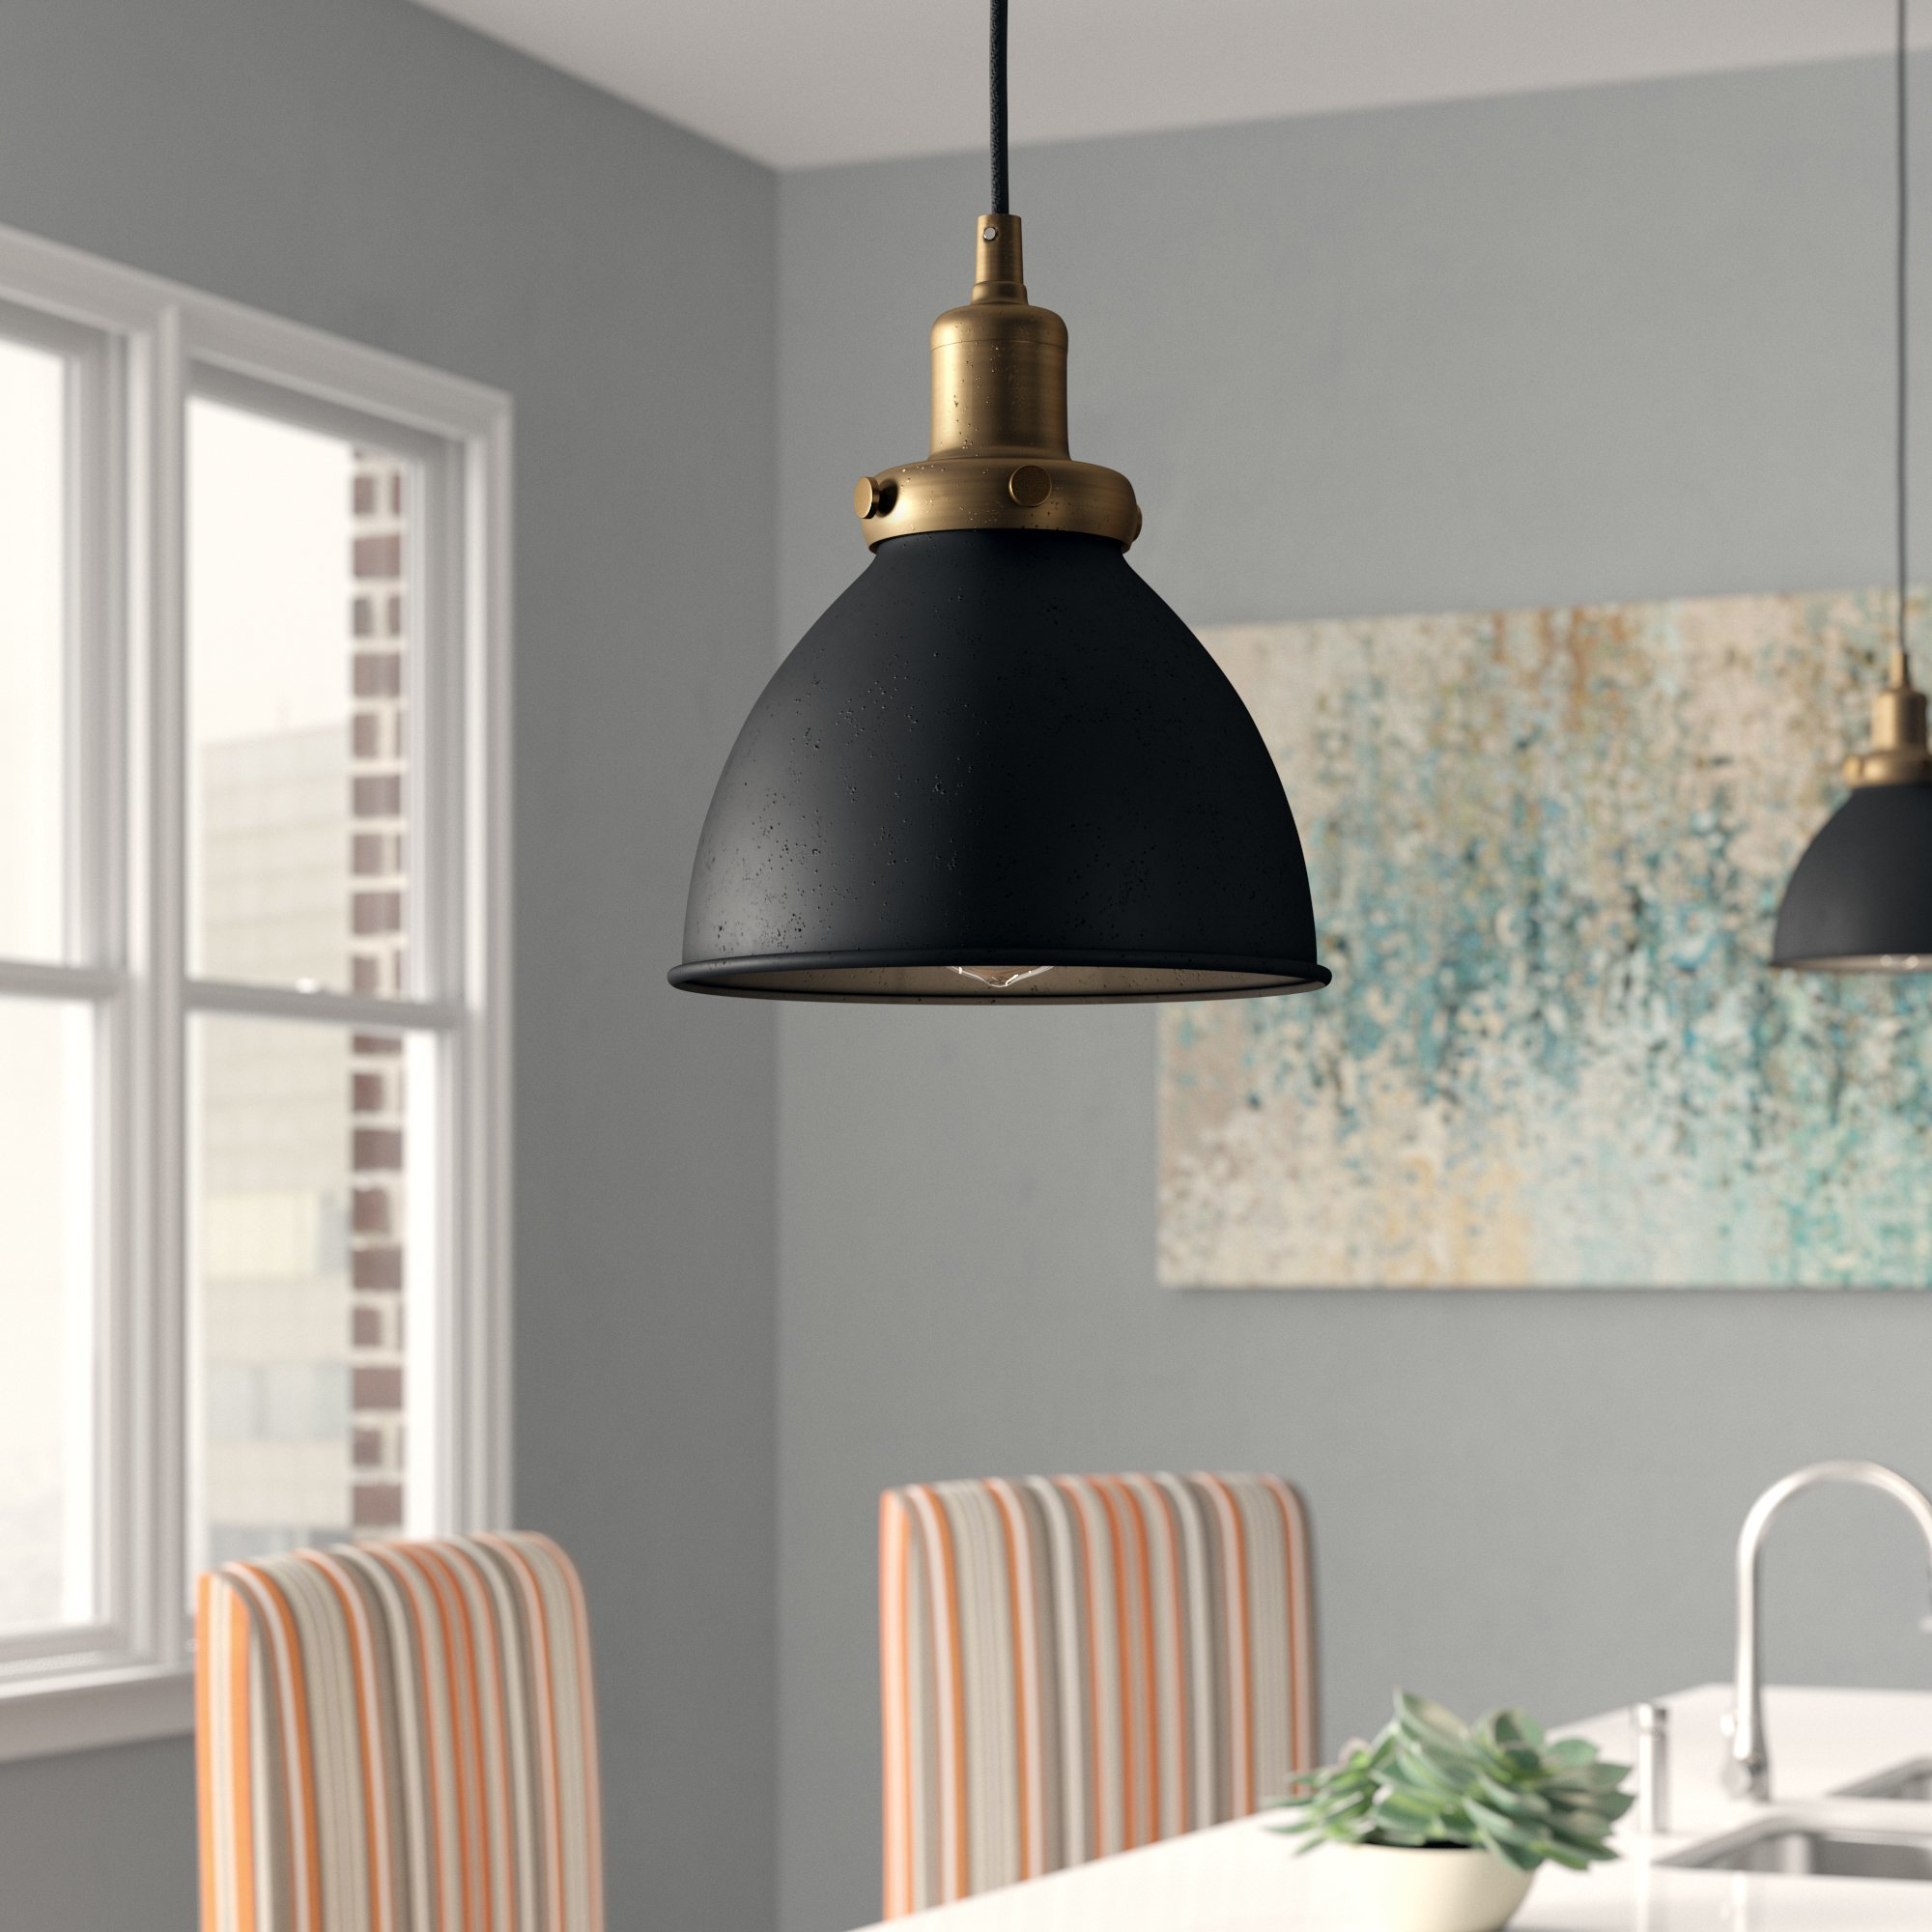 Bodie 1 Light Bell Pendant With Regard To Widely Used Abernathy 1 Light Dome Pendants (View 8 of 25)